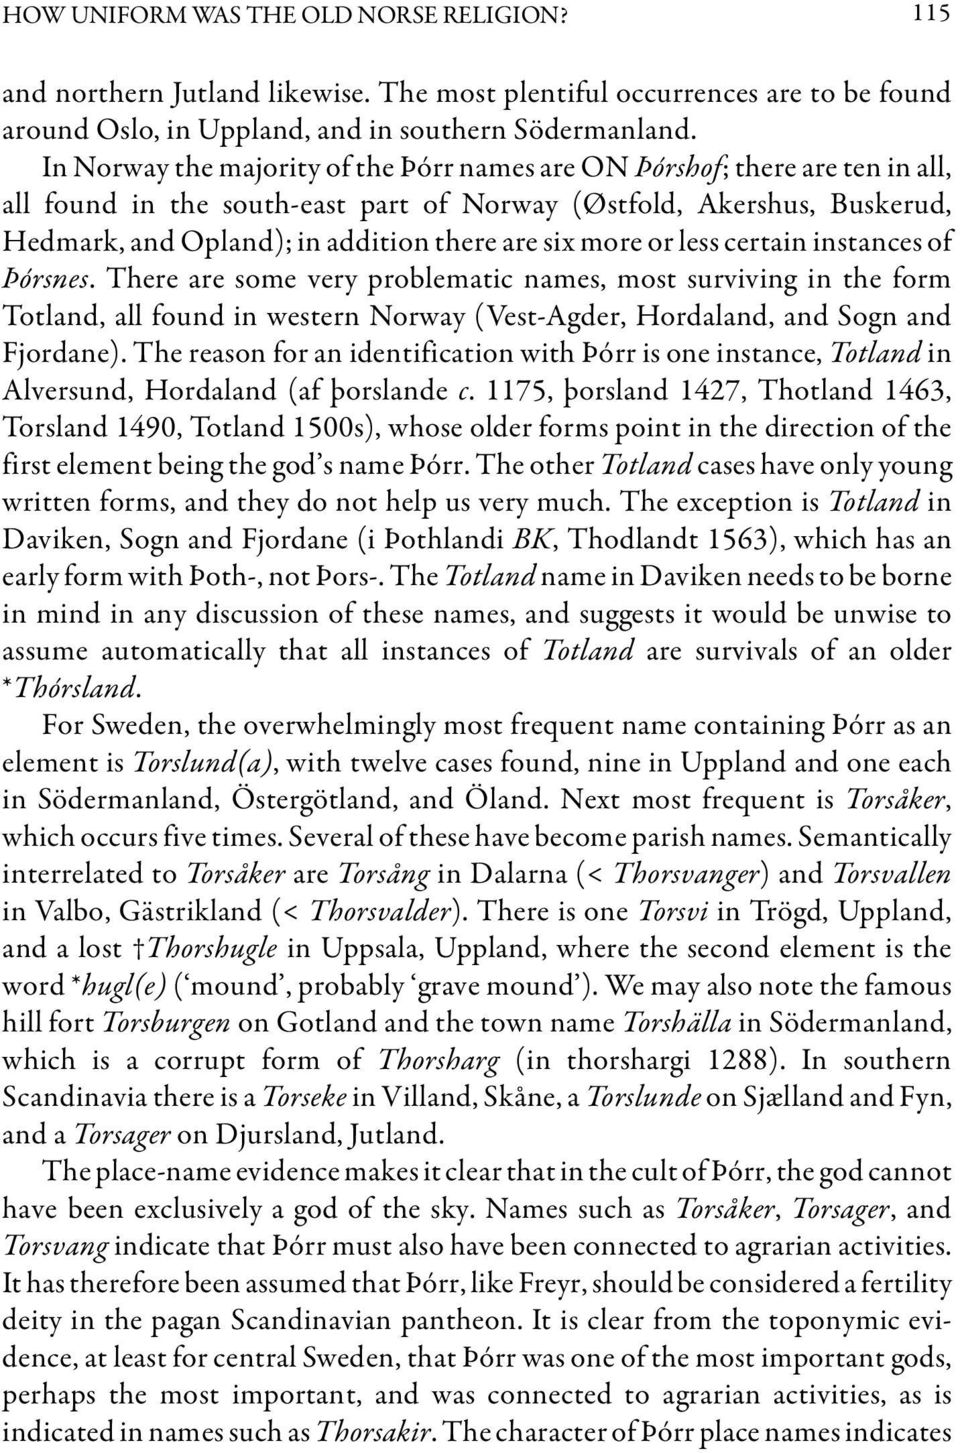 more or less certain instances of Þórsnes. There are some very problematic names, most surviving in the form Totland, all found in western Norway (Vest-Agder, Hordaland, and Sogn and Fjordane).